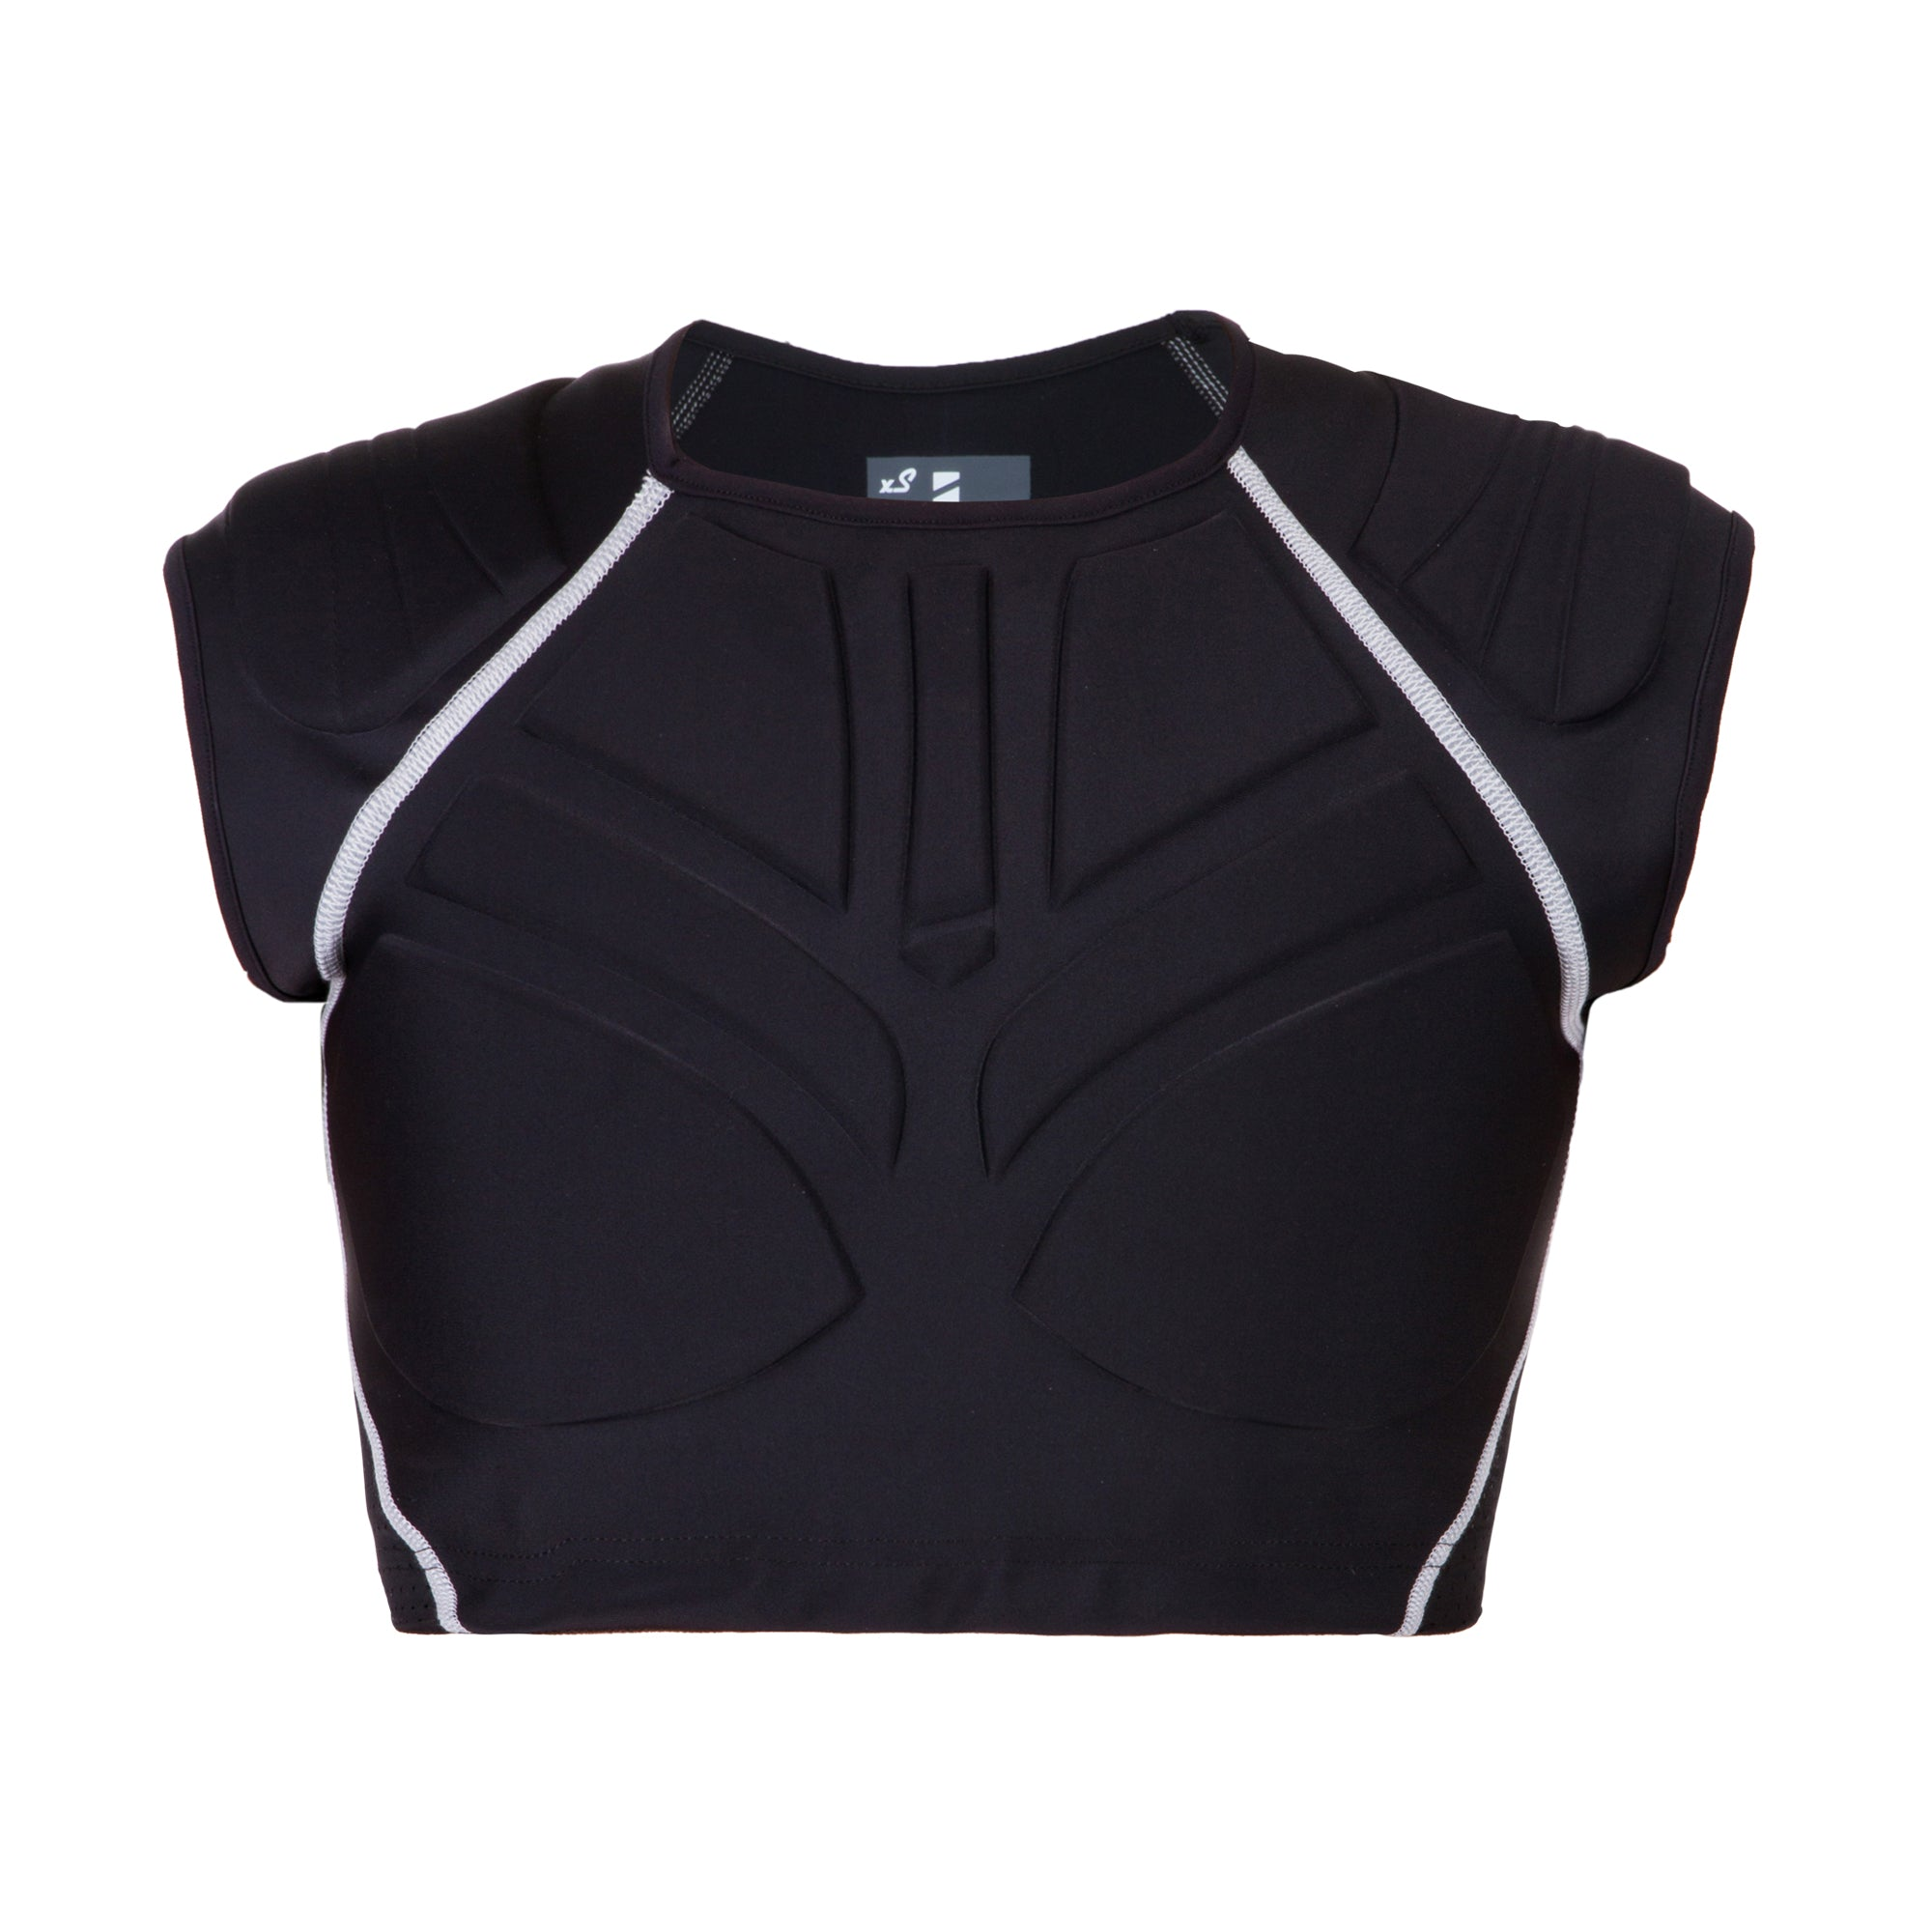 revelia-chest-and-shoulders-protection